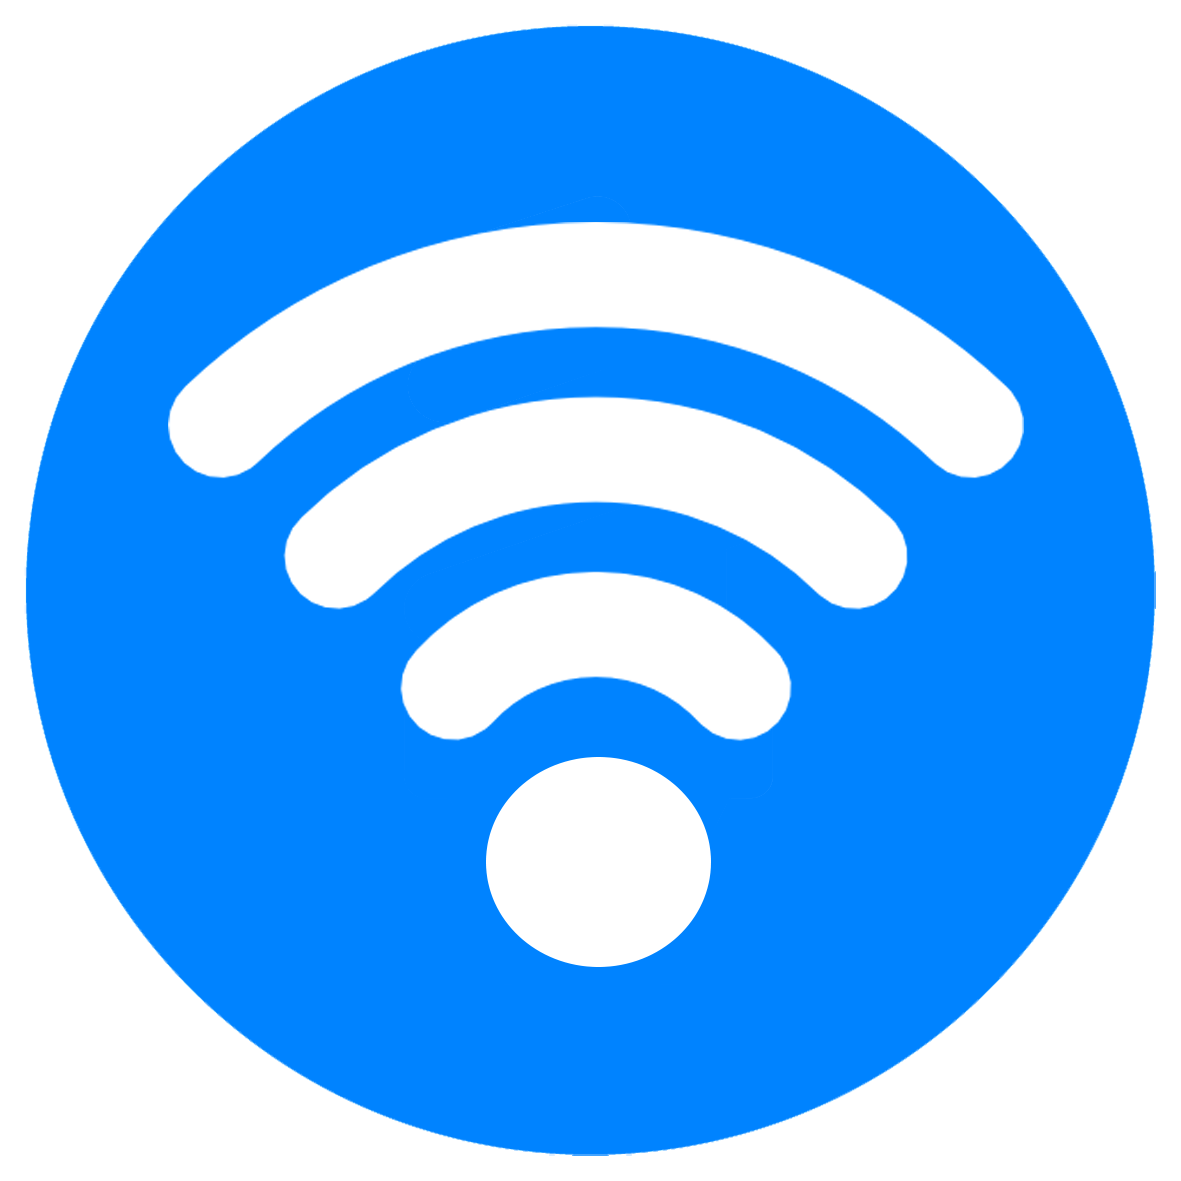 Wifi icon png #3779.